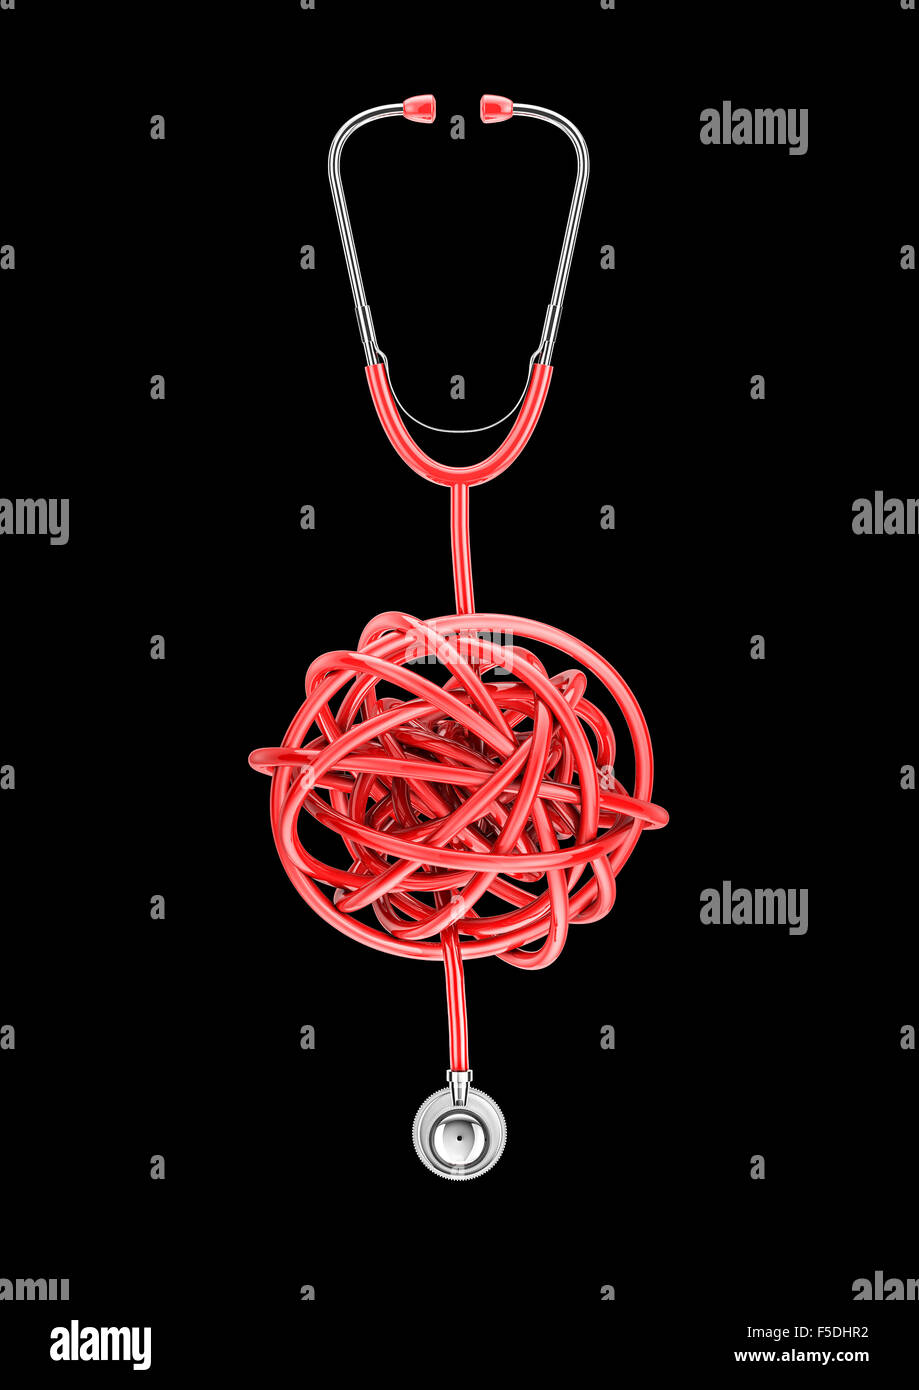 Stethoscope knot / 3D render of stethoscope with tubing in twisted knot - Stock Image